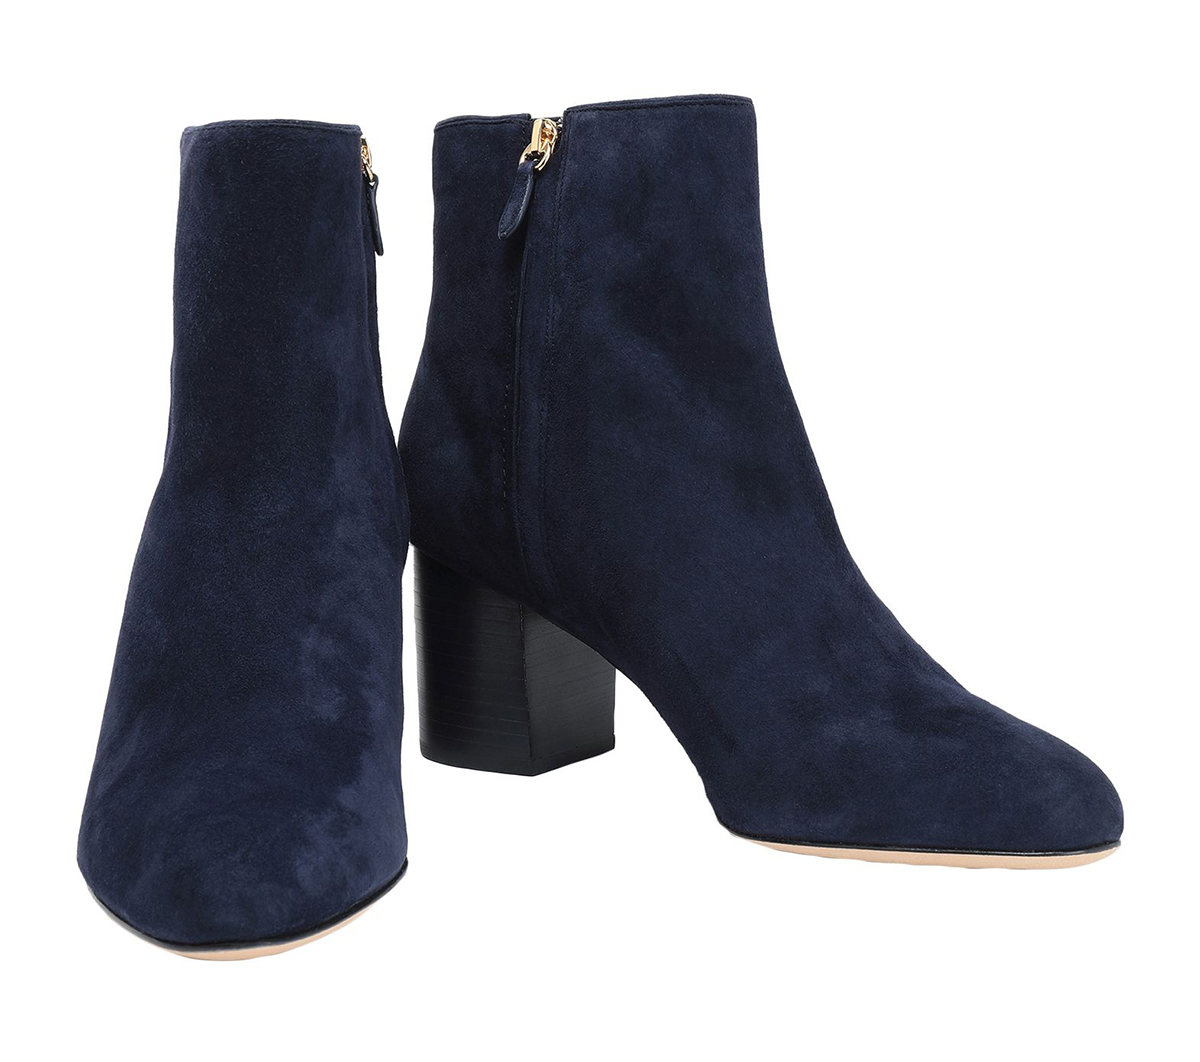 DVF boots